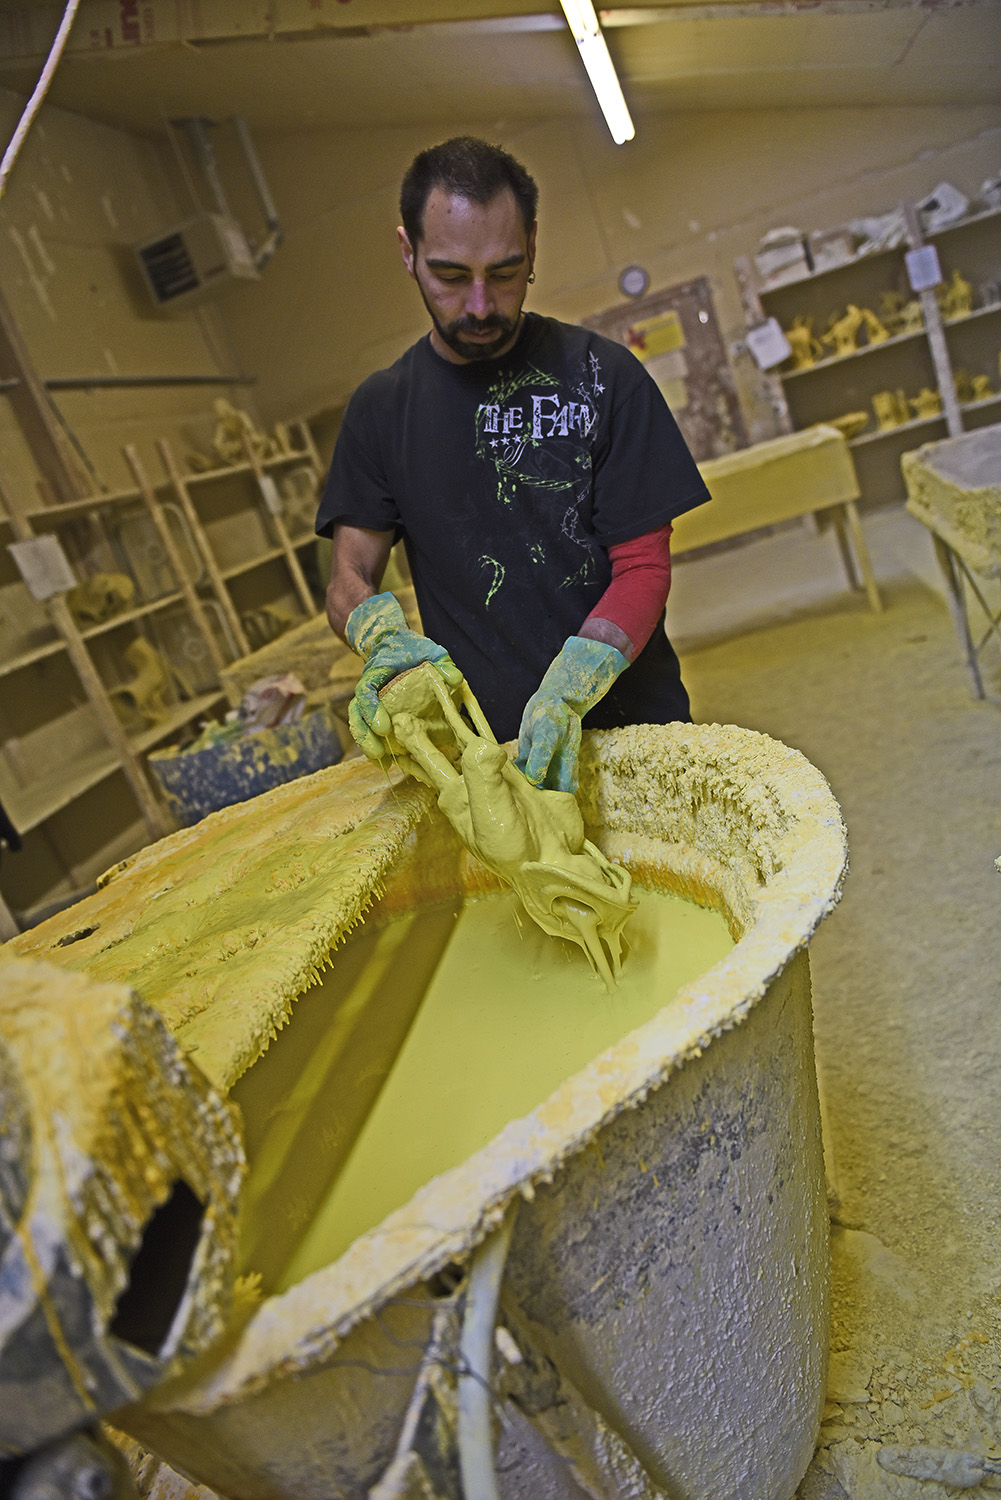 """Layers invested: - This stage is called the """"investment"""" as layers and layers are built-up to create a ceramic coating on the wax. This shell needs to be strong enough to hold the molten bronze during the pour."""